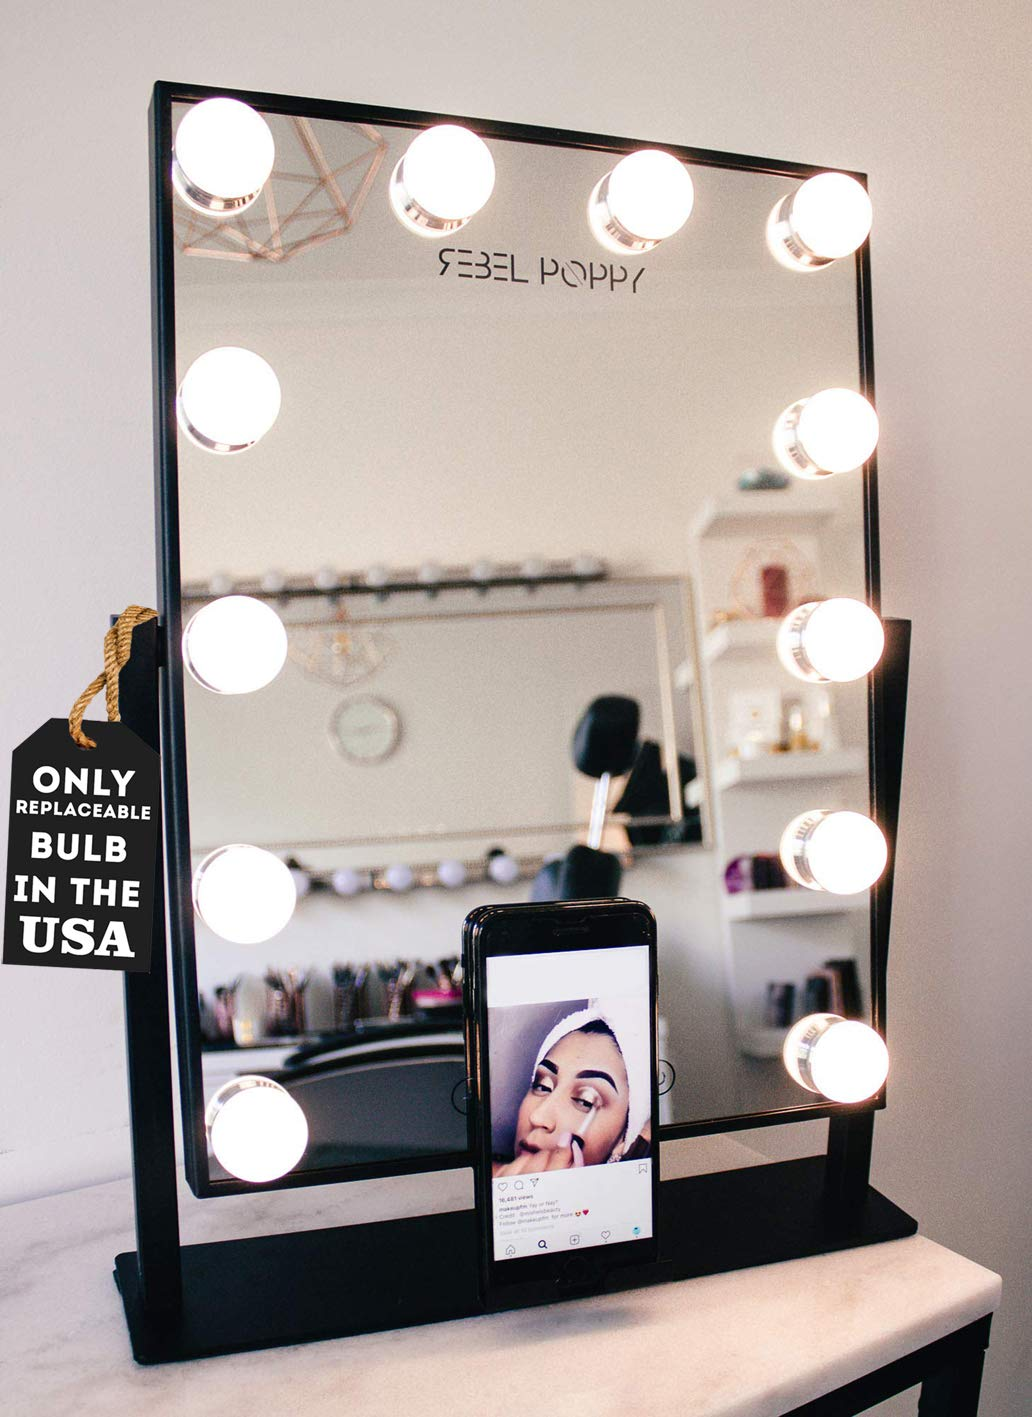 REBEL POPPY Vanity Mirrors with LED Lights – Phone Mount, 3 Lighting Touch Control, 18.5 x 14.8 , Fogless – Hollywood Lighted Makeup Mirror – Black